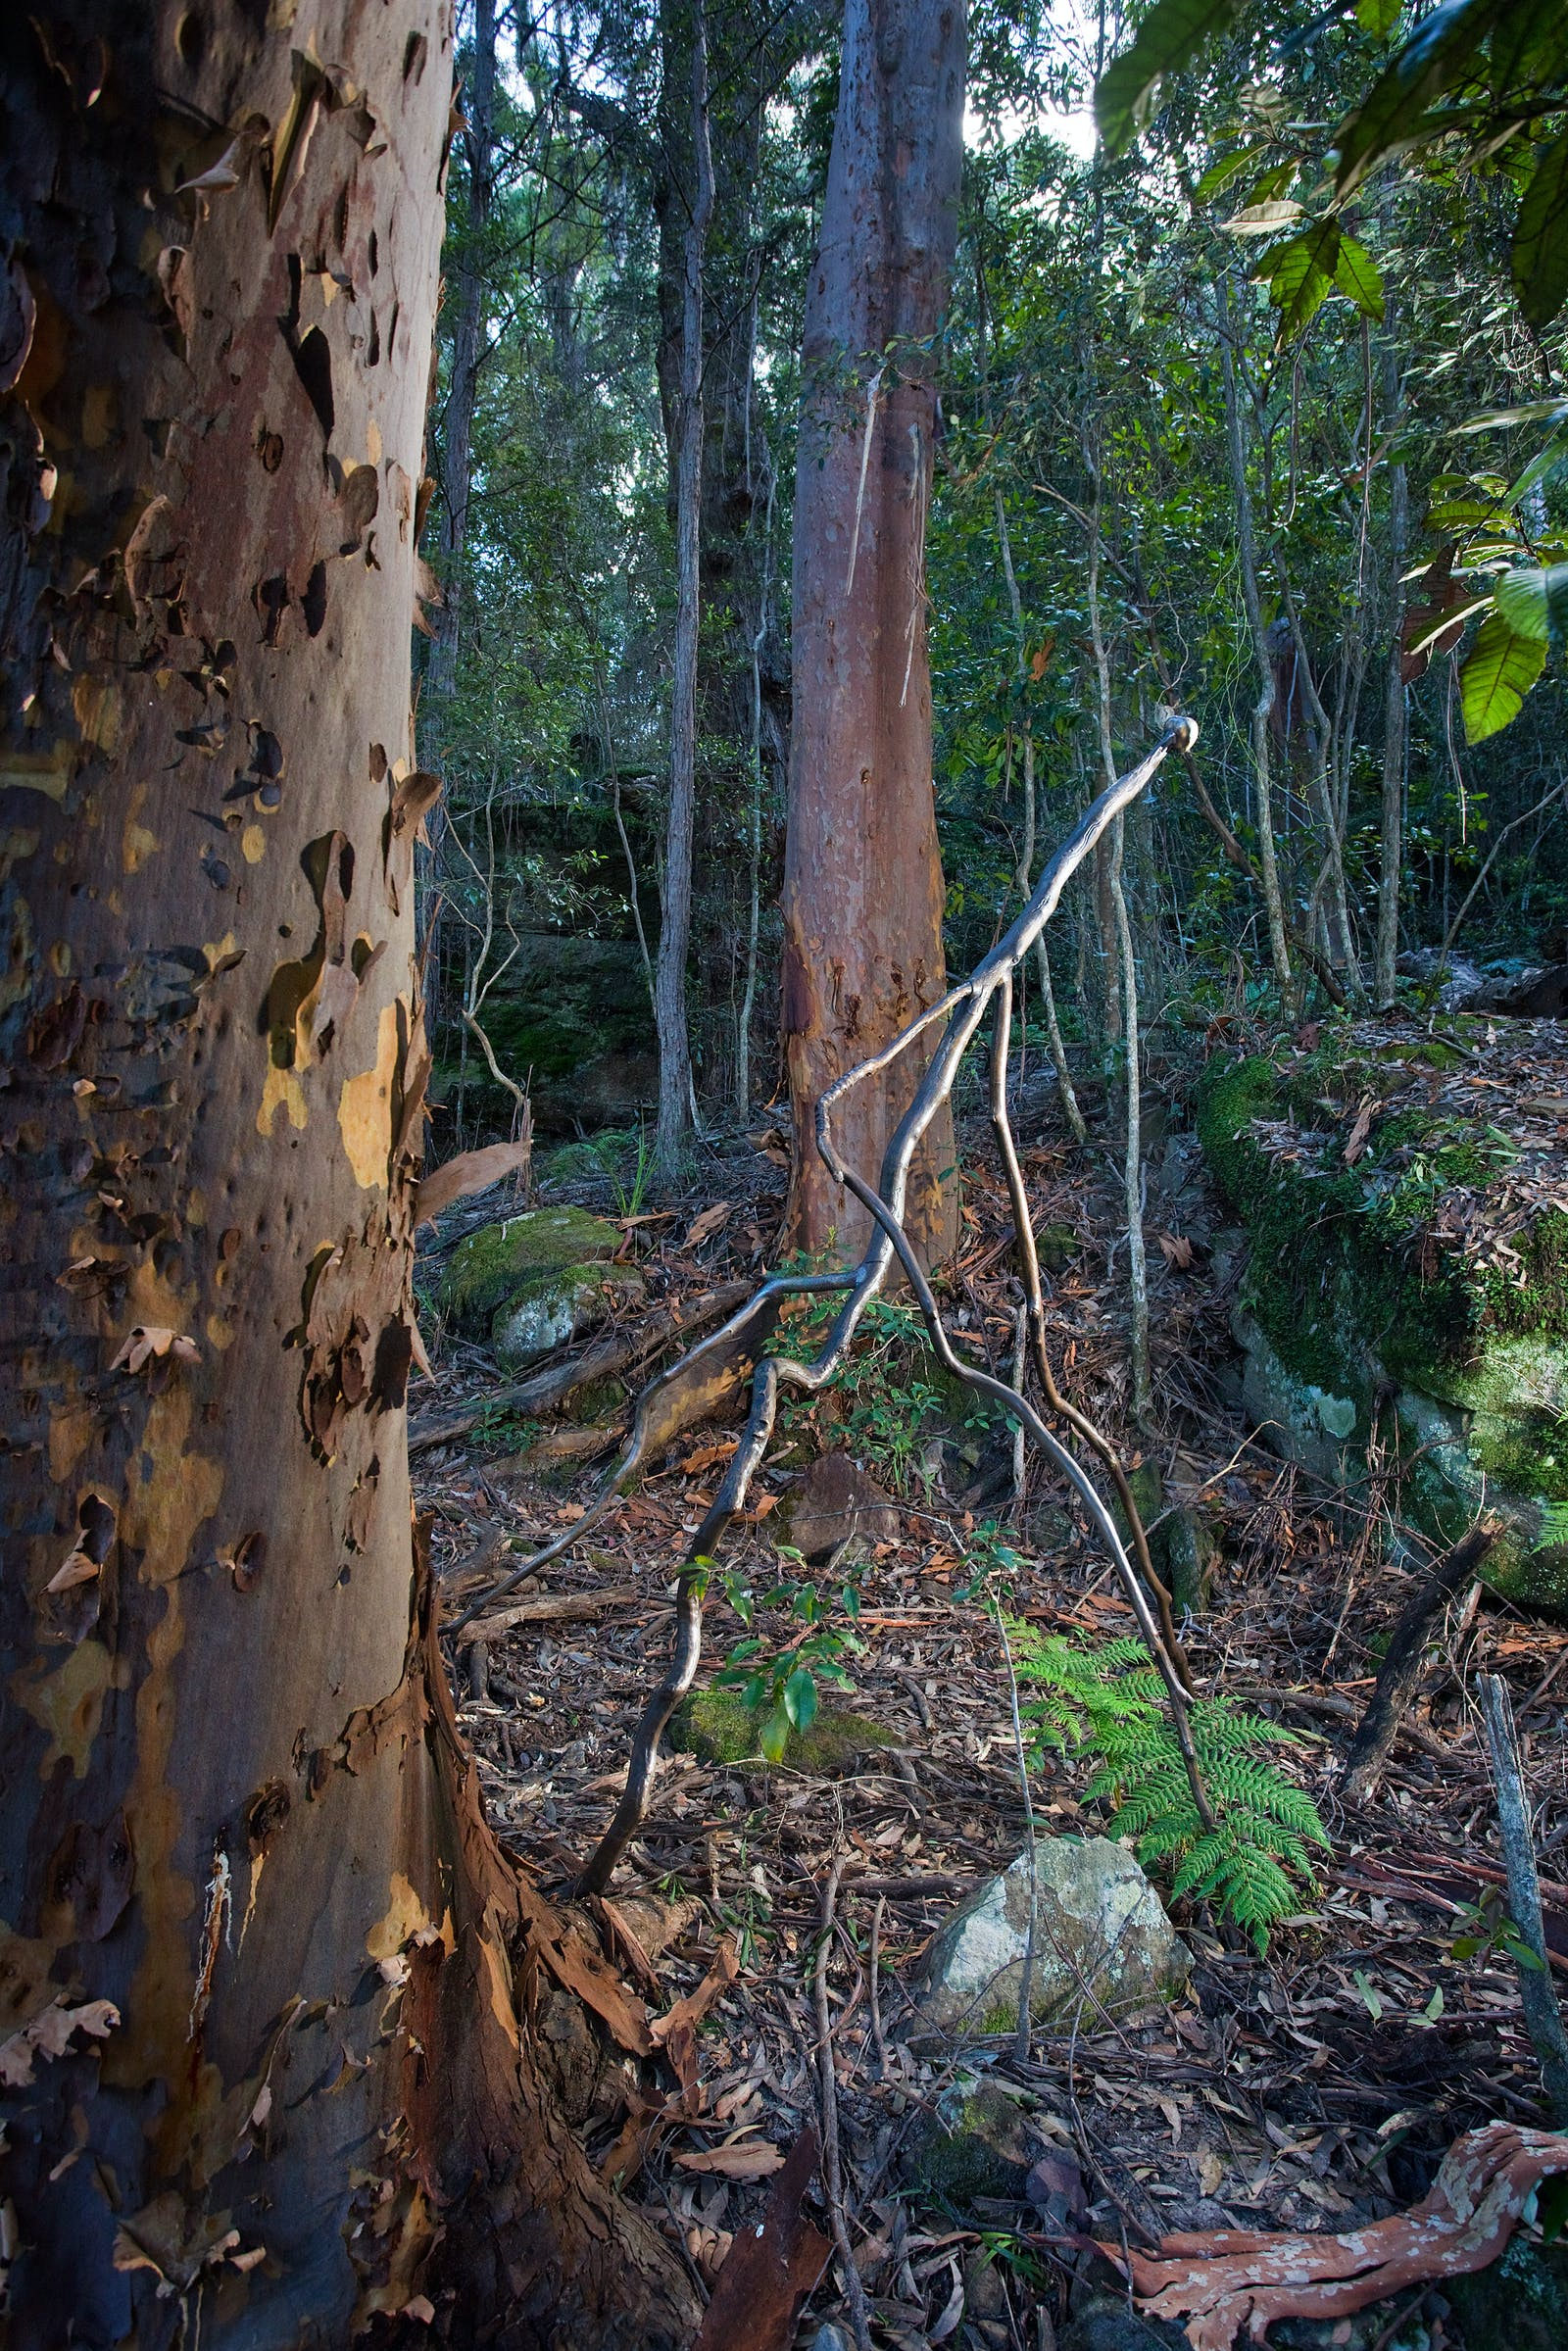 Camie Lyons – Winner of 2021 Sculpture at Scenic World Award